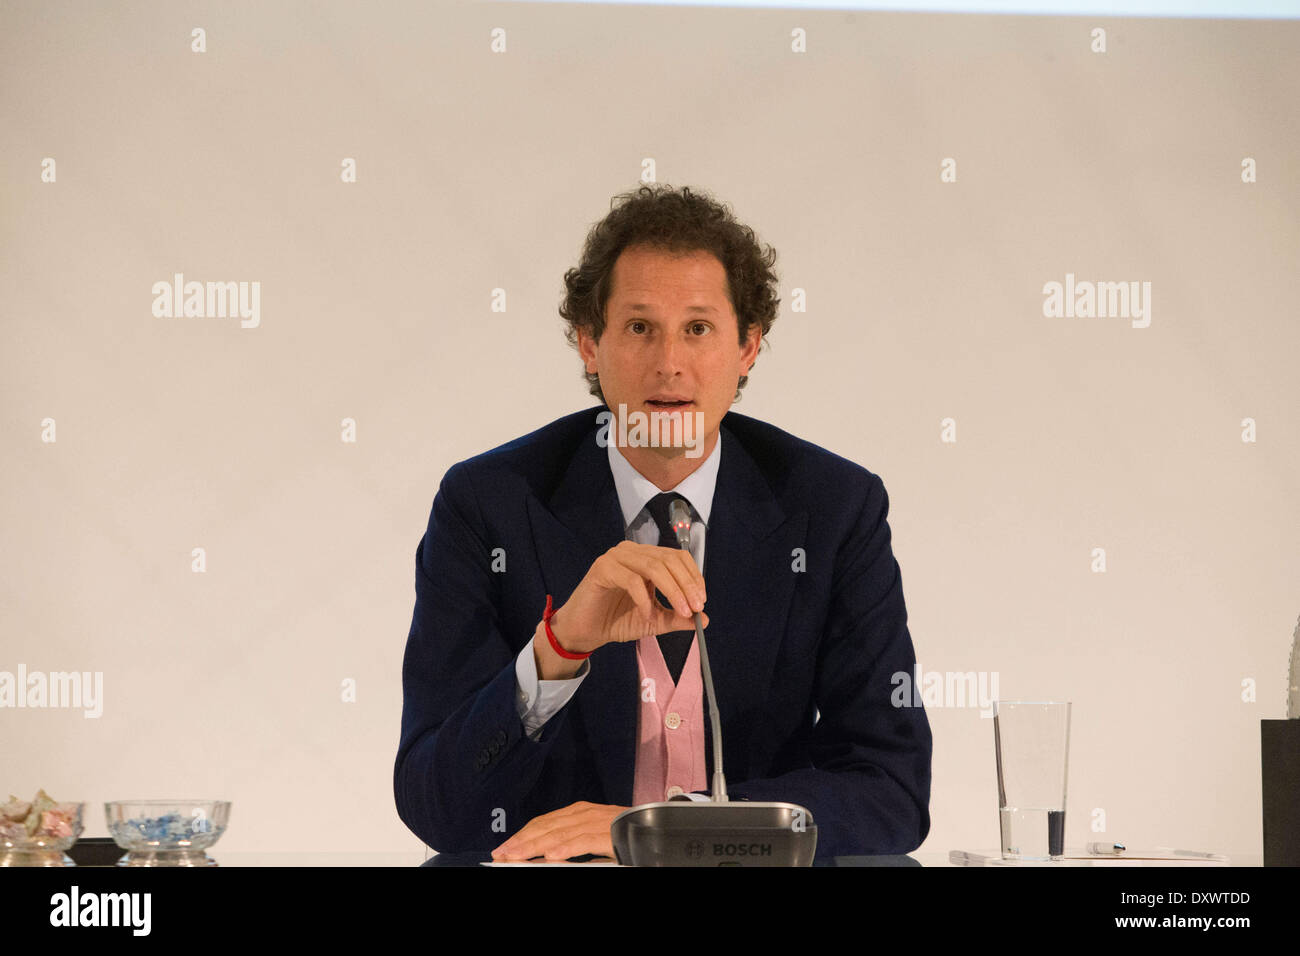 Turin, Italy. 31st Mar, 2014. John Elkan speaks at general Meeting of Fiat Shareholders, in Turin, Italy, on March Stock Photo